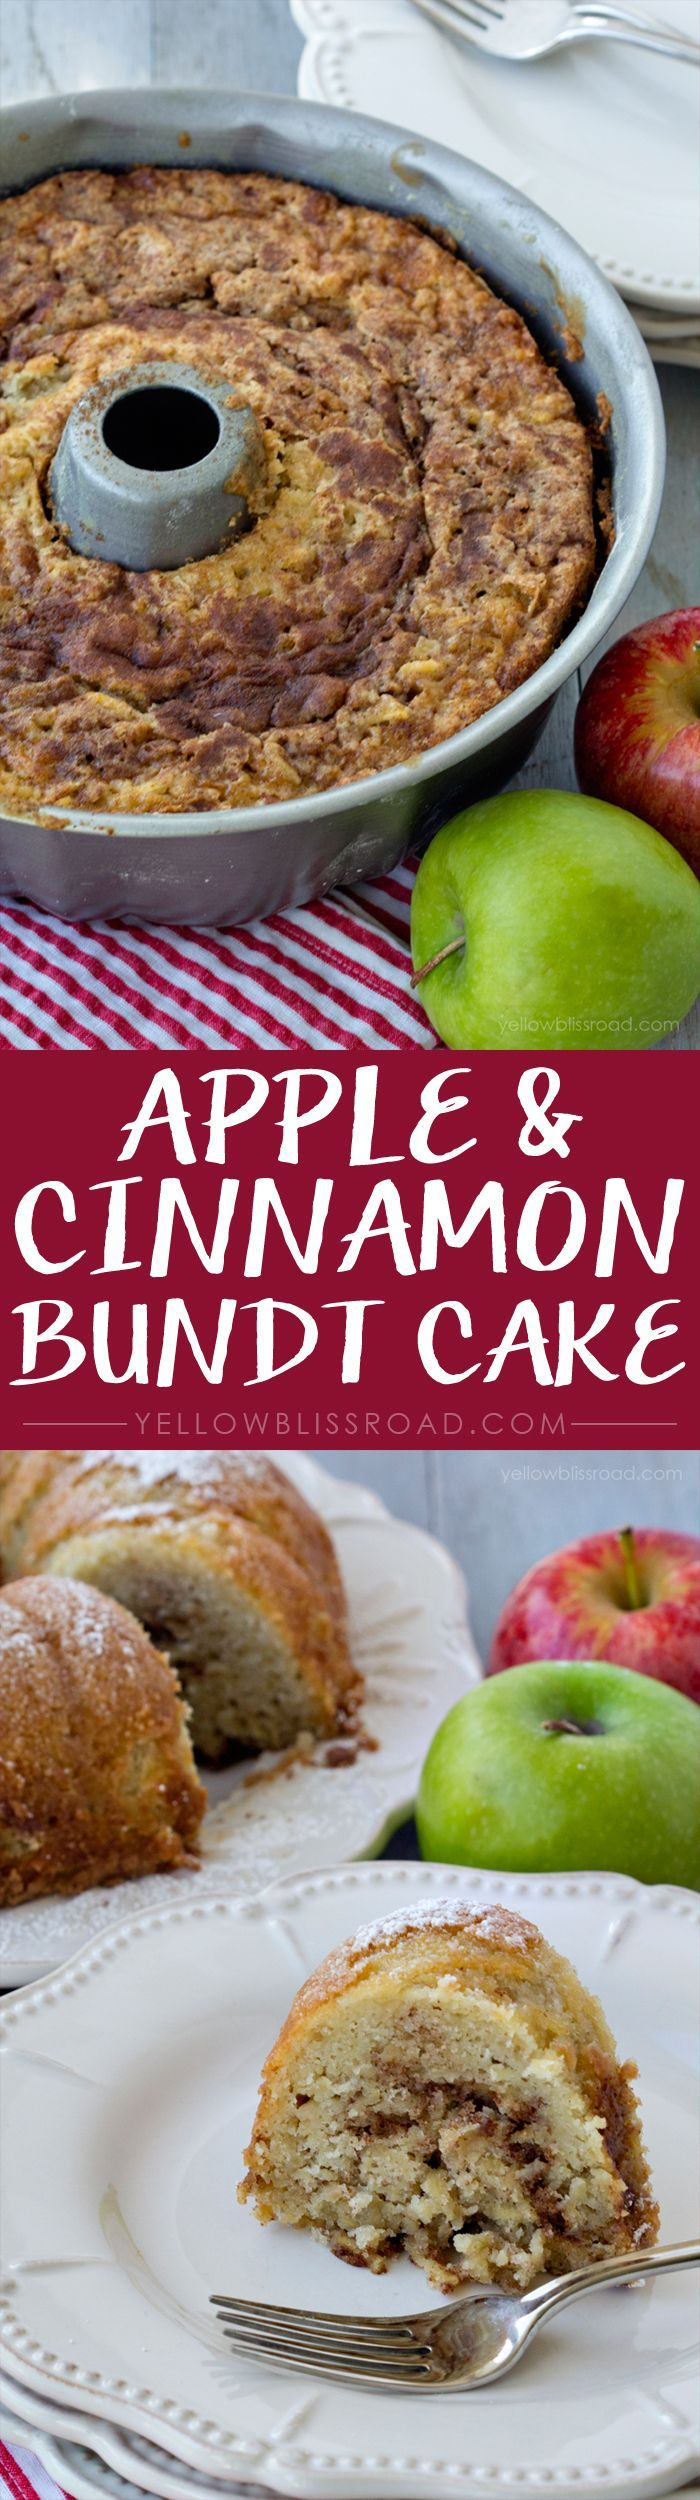 Apple & Cinnamon Bundt Cake – Not too sweet and a perfect dessert for fall!